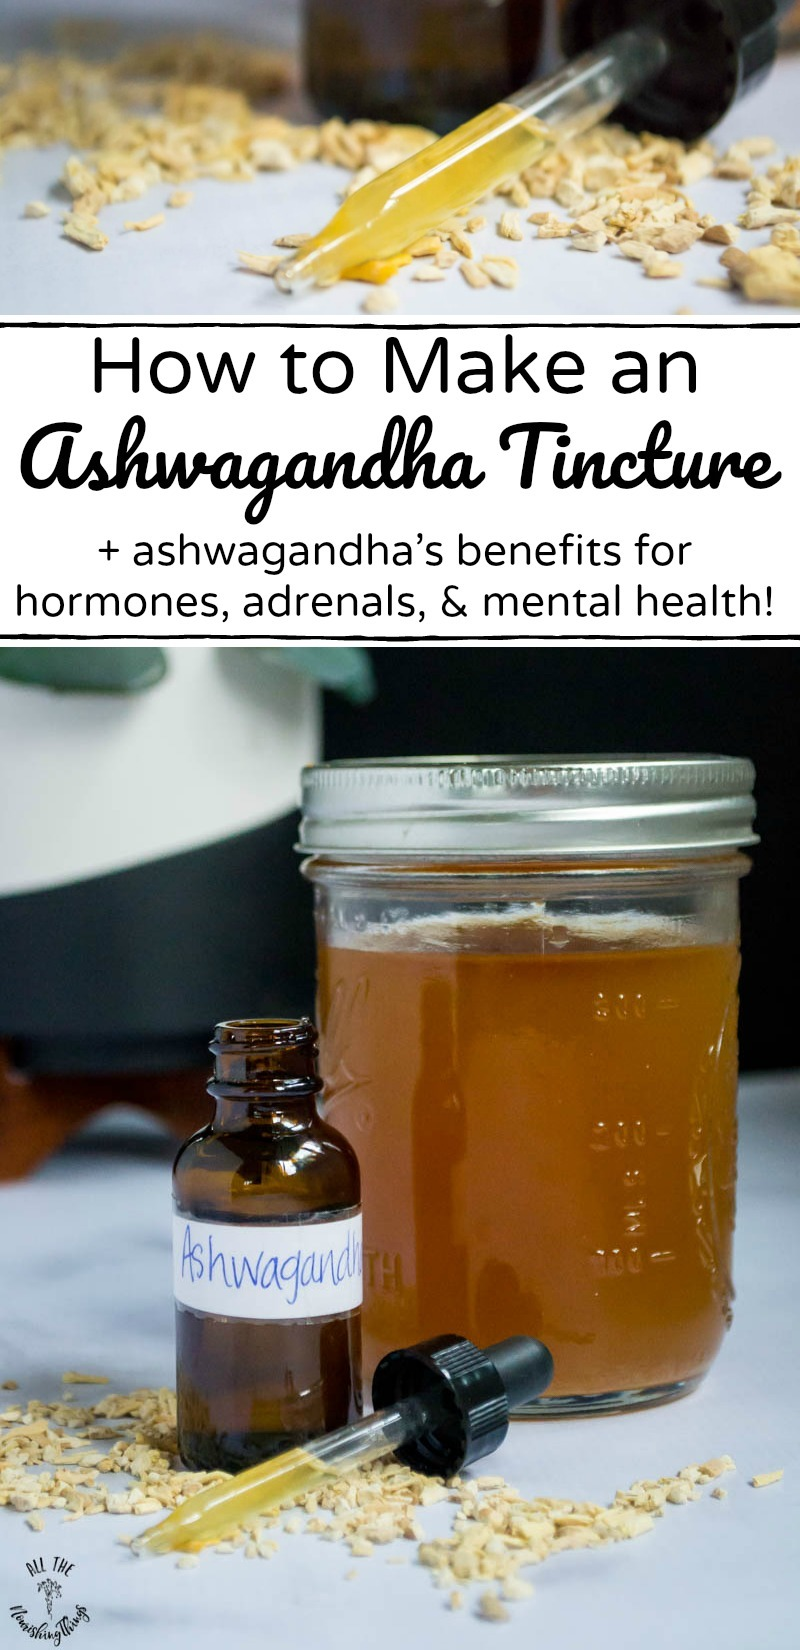 collage of ashwagandha images with text overlay for how to make an ashwagandha tincture